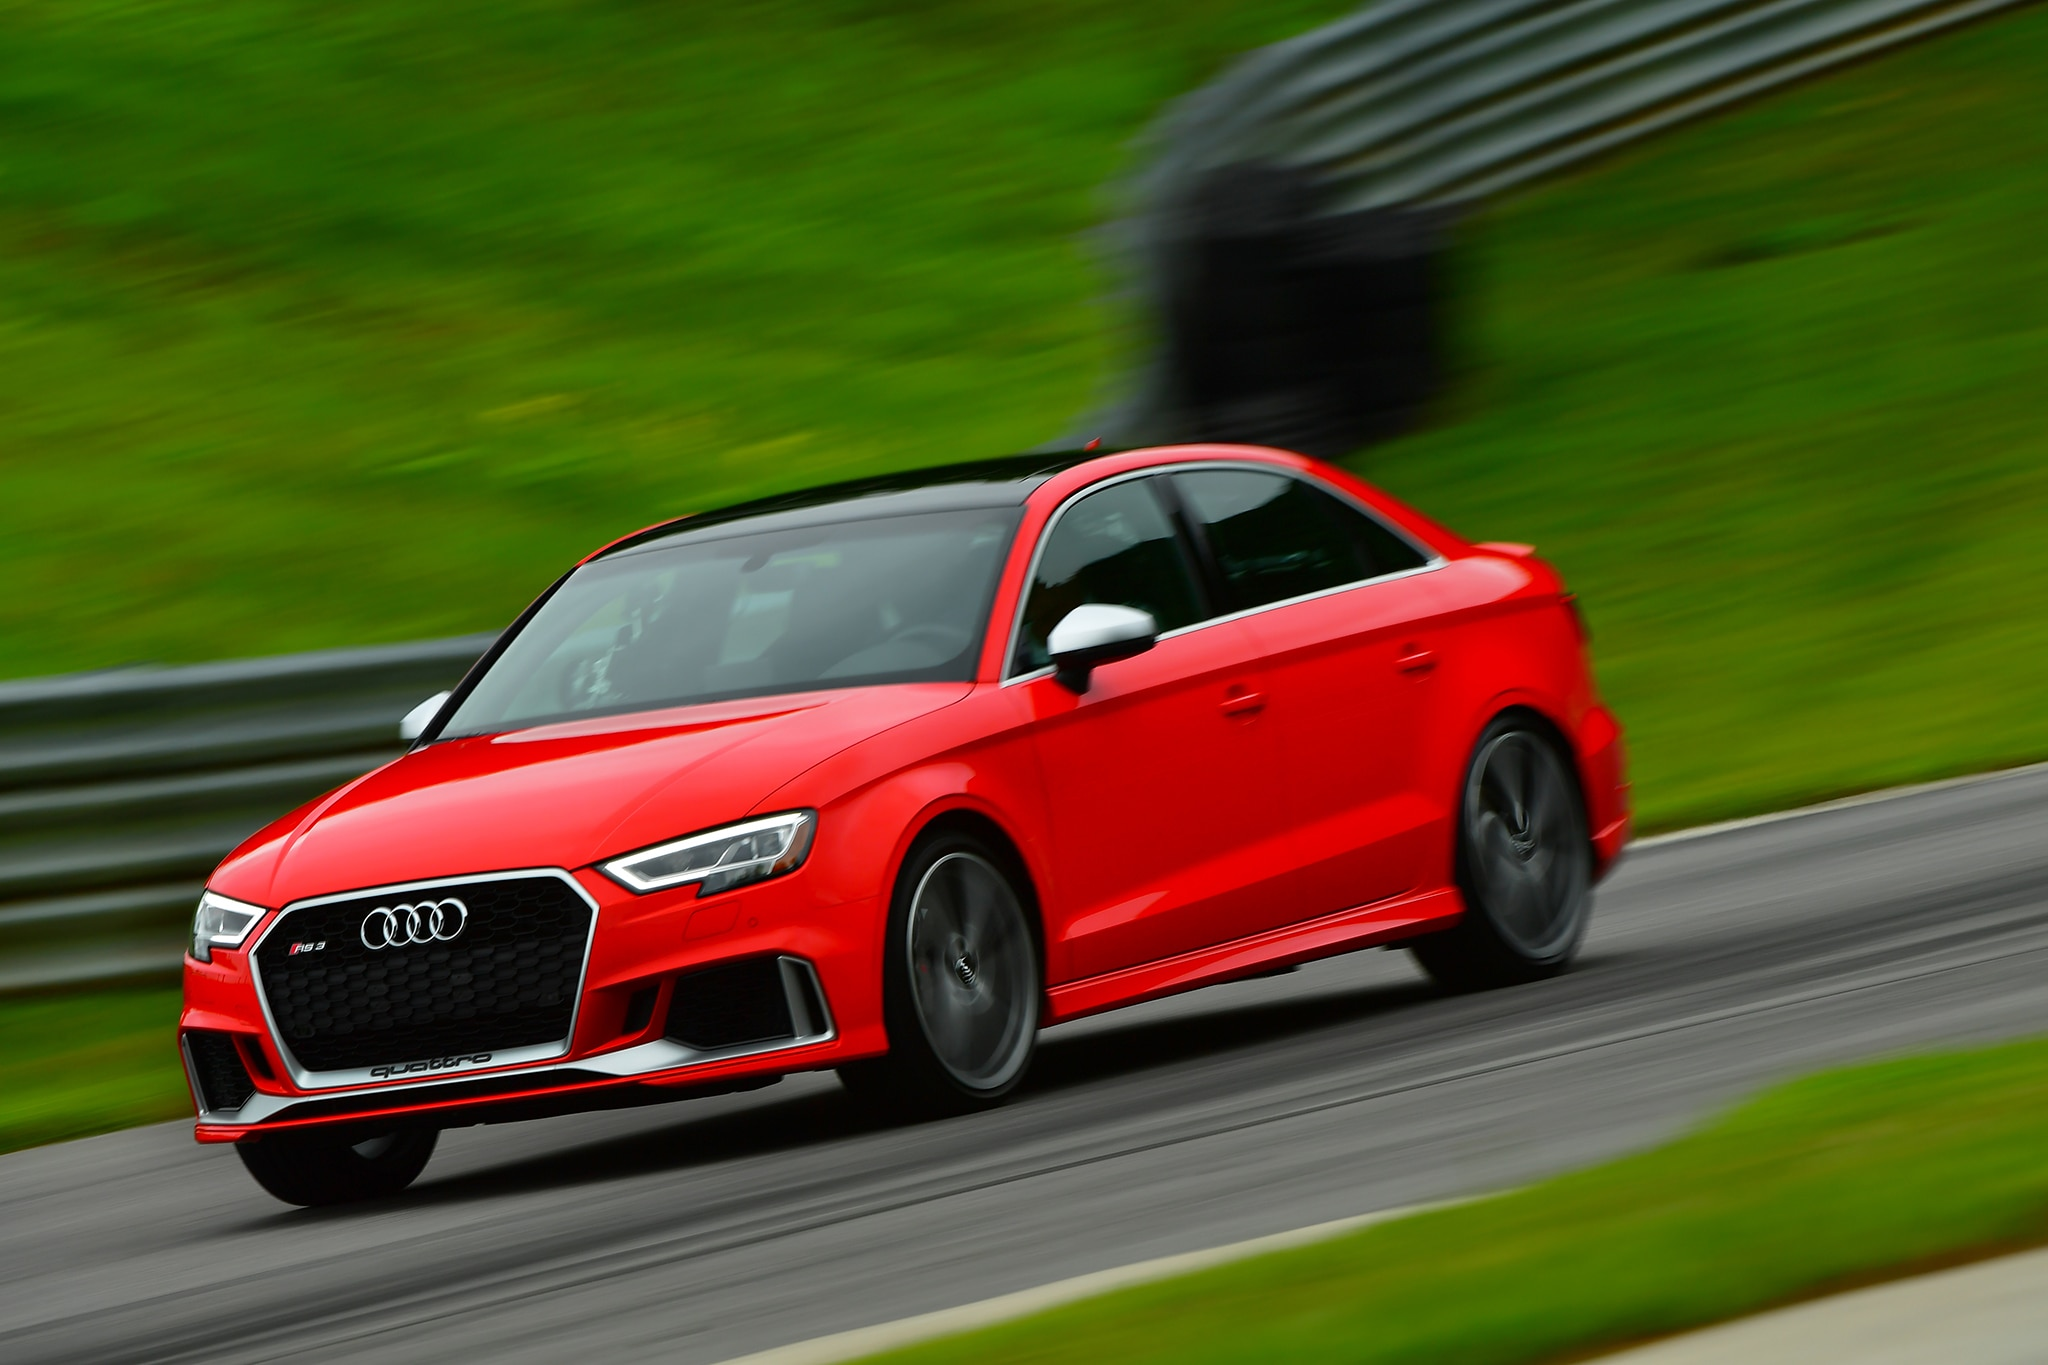 2018 Audi RS3 Front Three Quarter In Motion 11